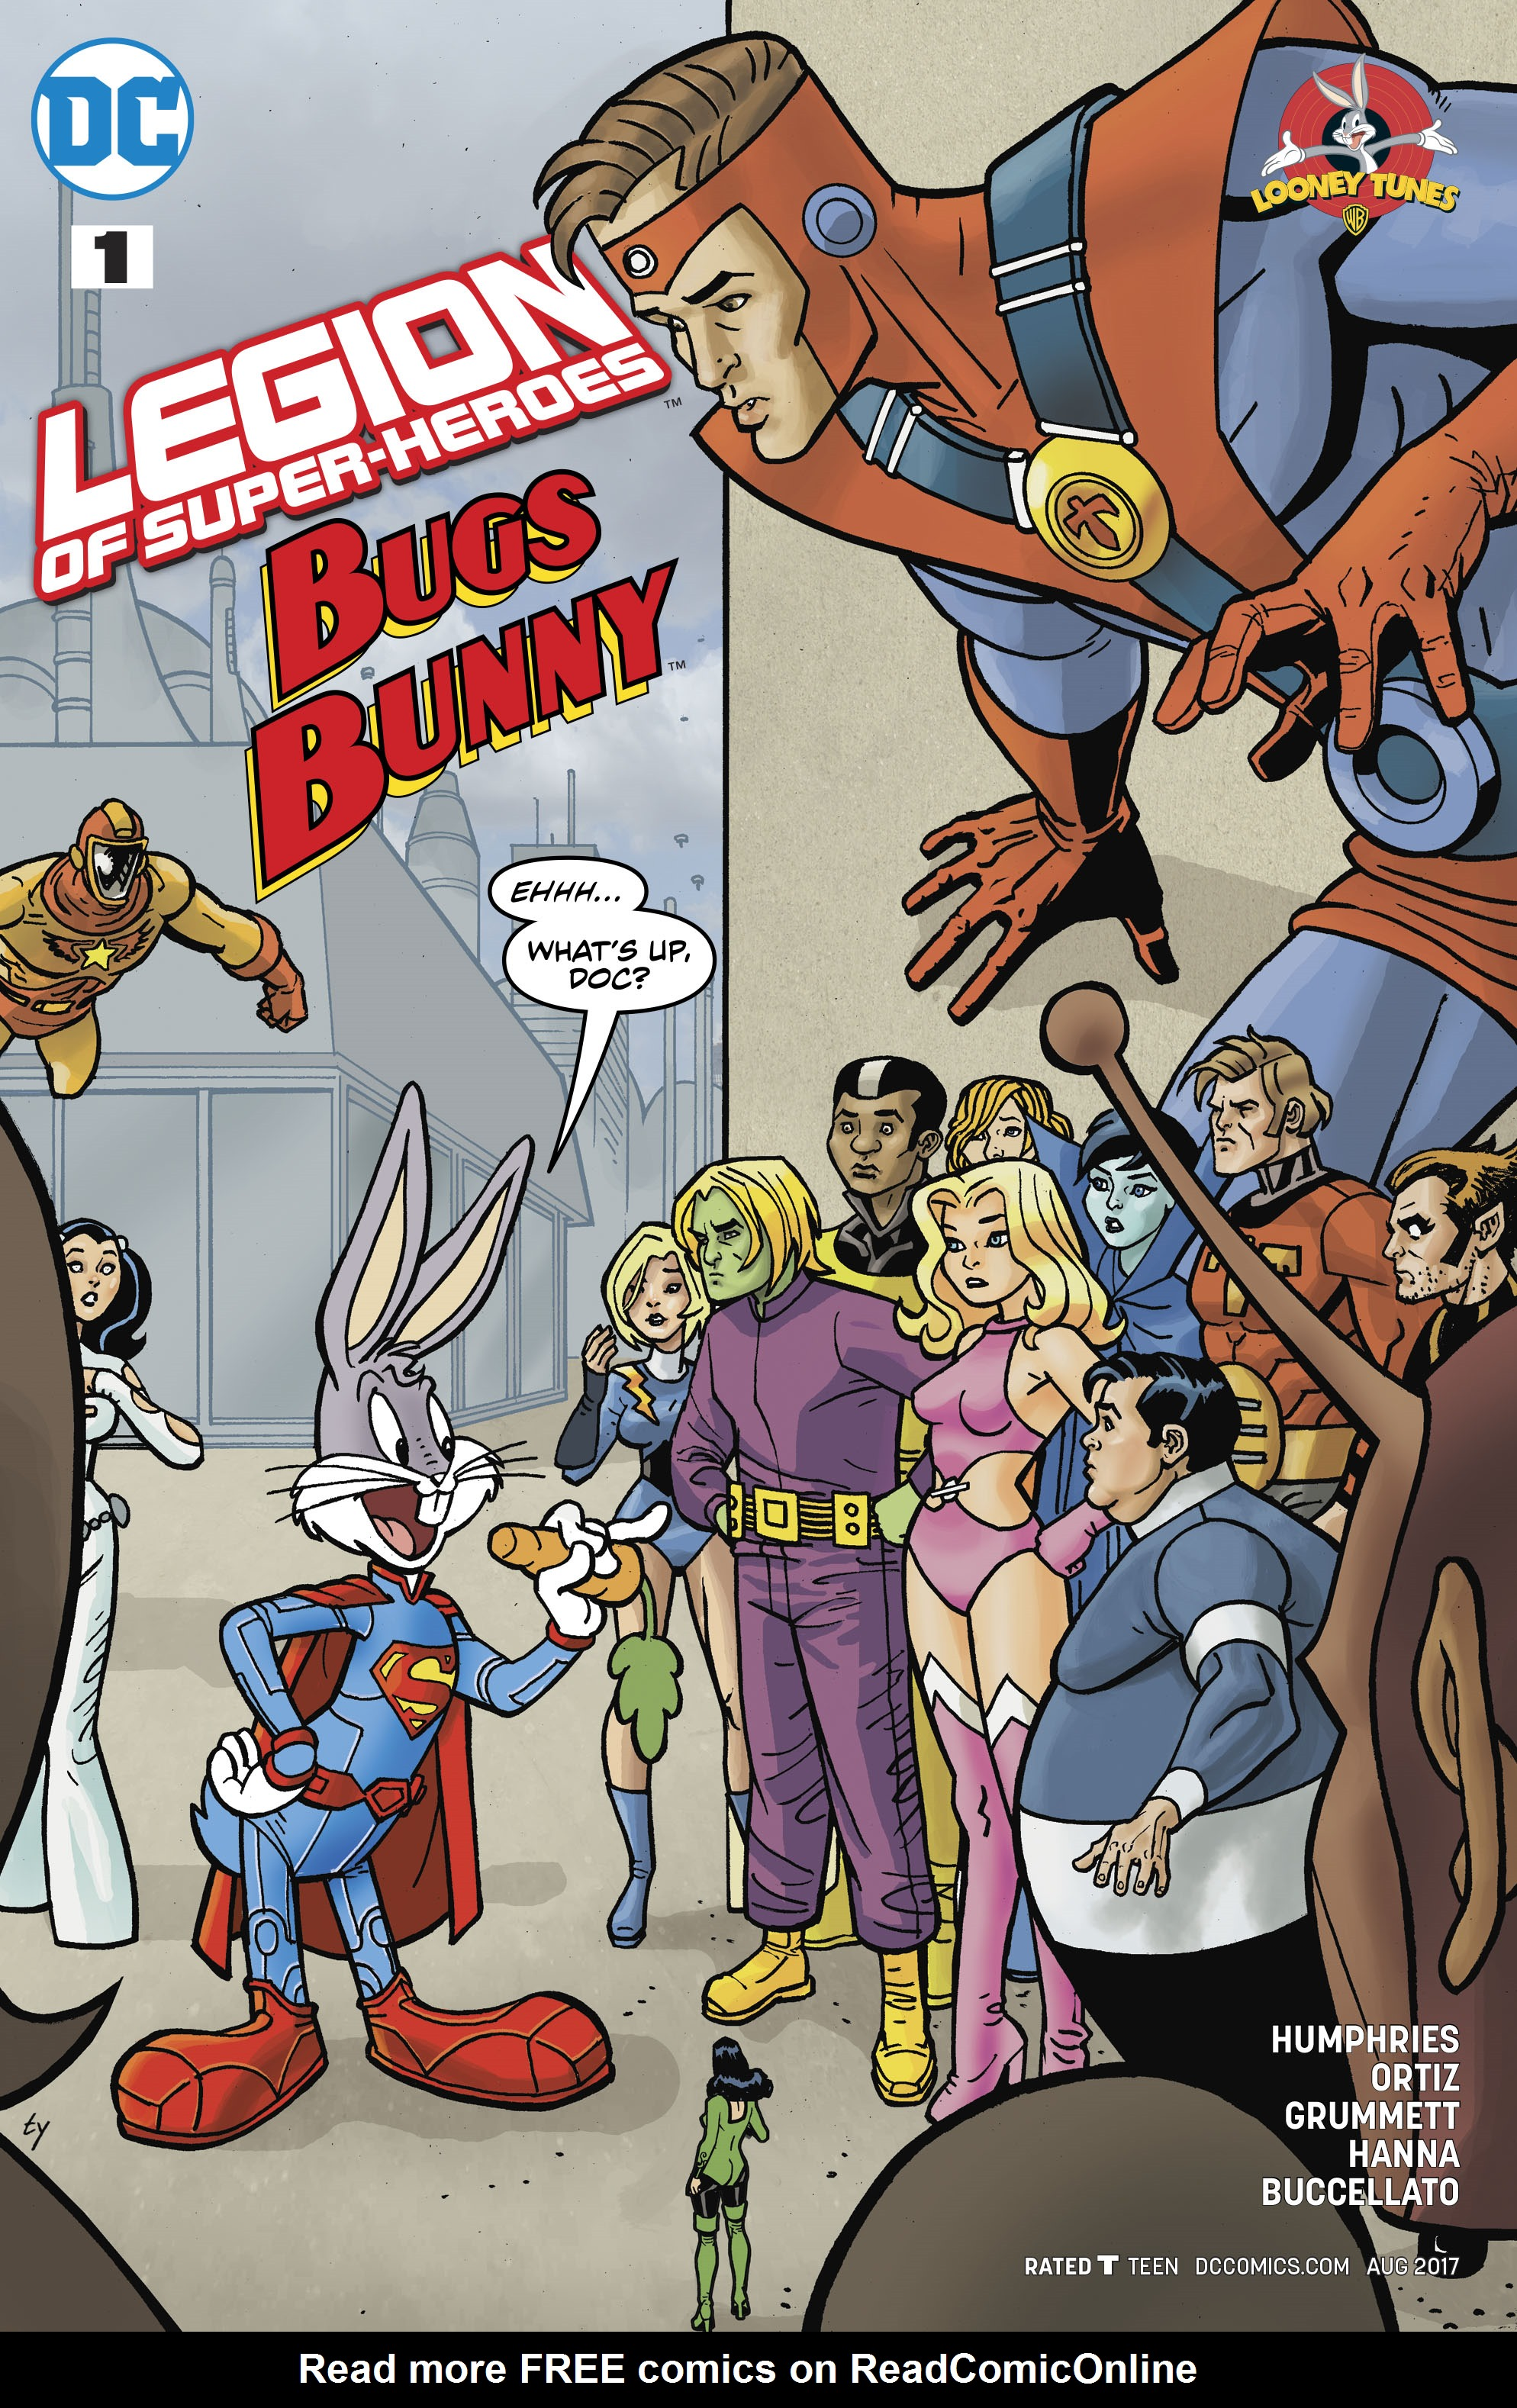 Read online Legion of Super-Heroes/Bugs Bunny Special comic -  Issue # Full - 3